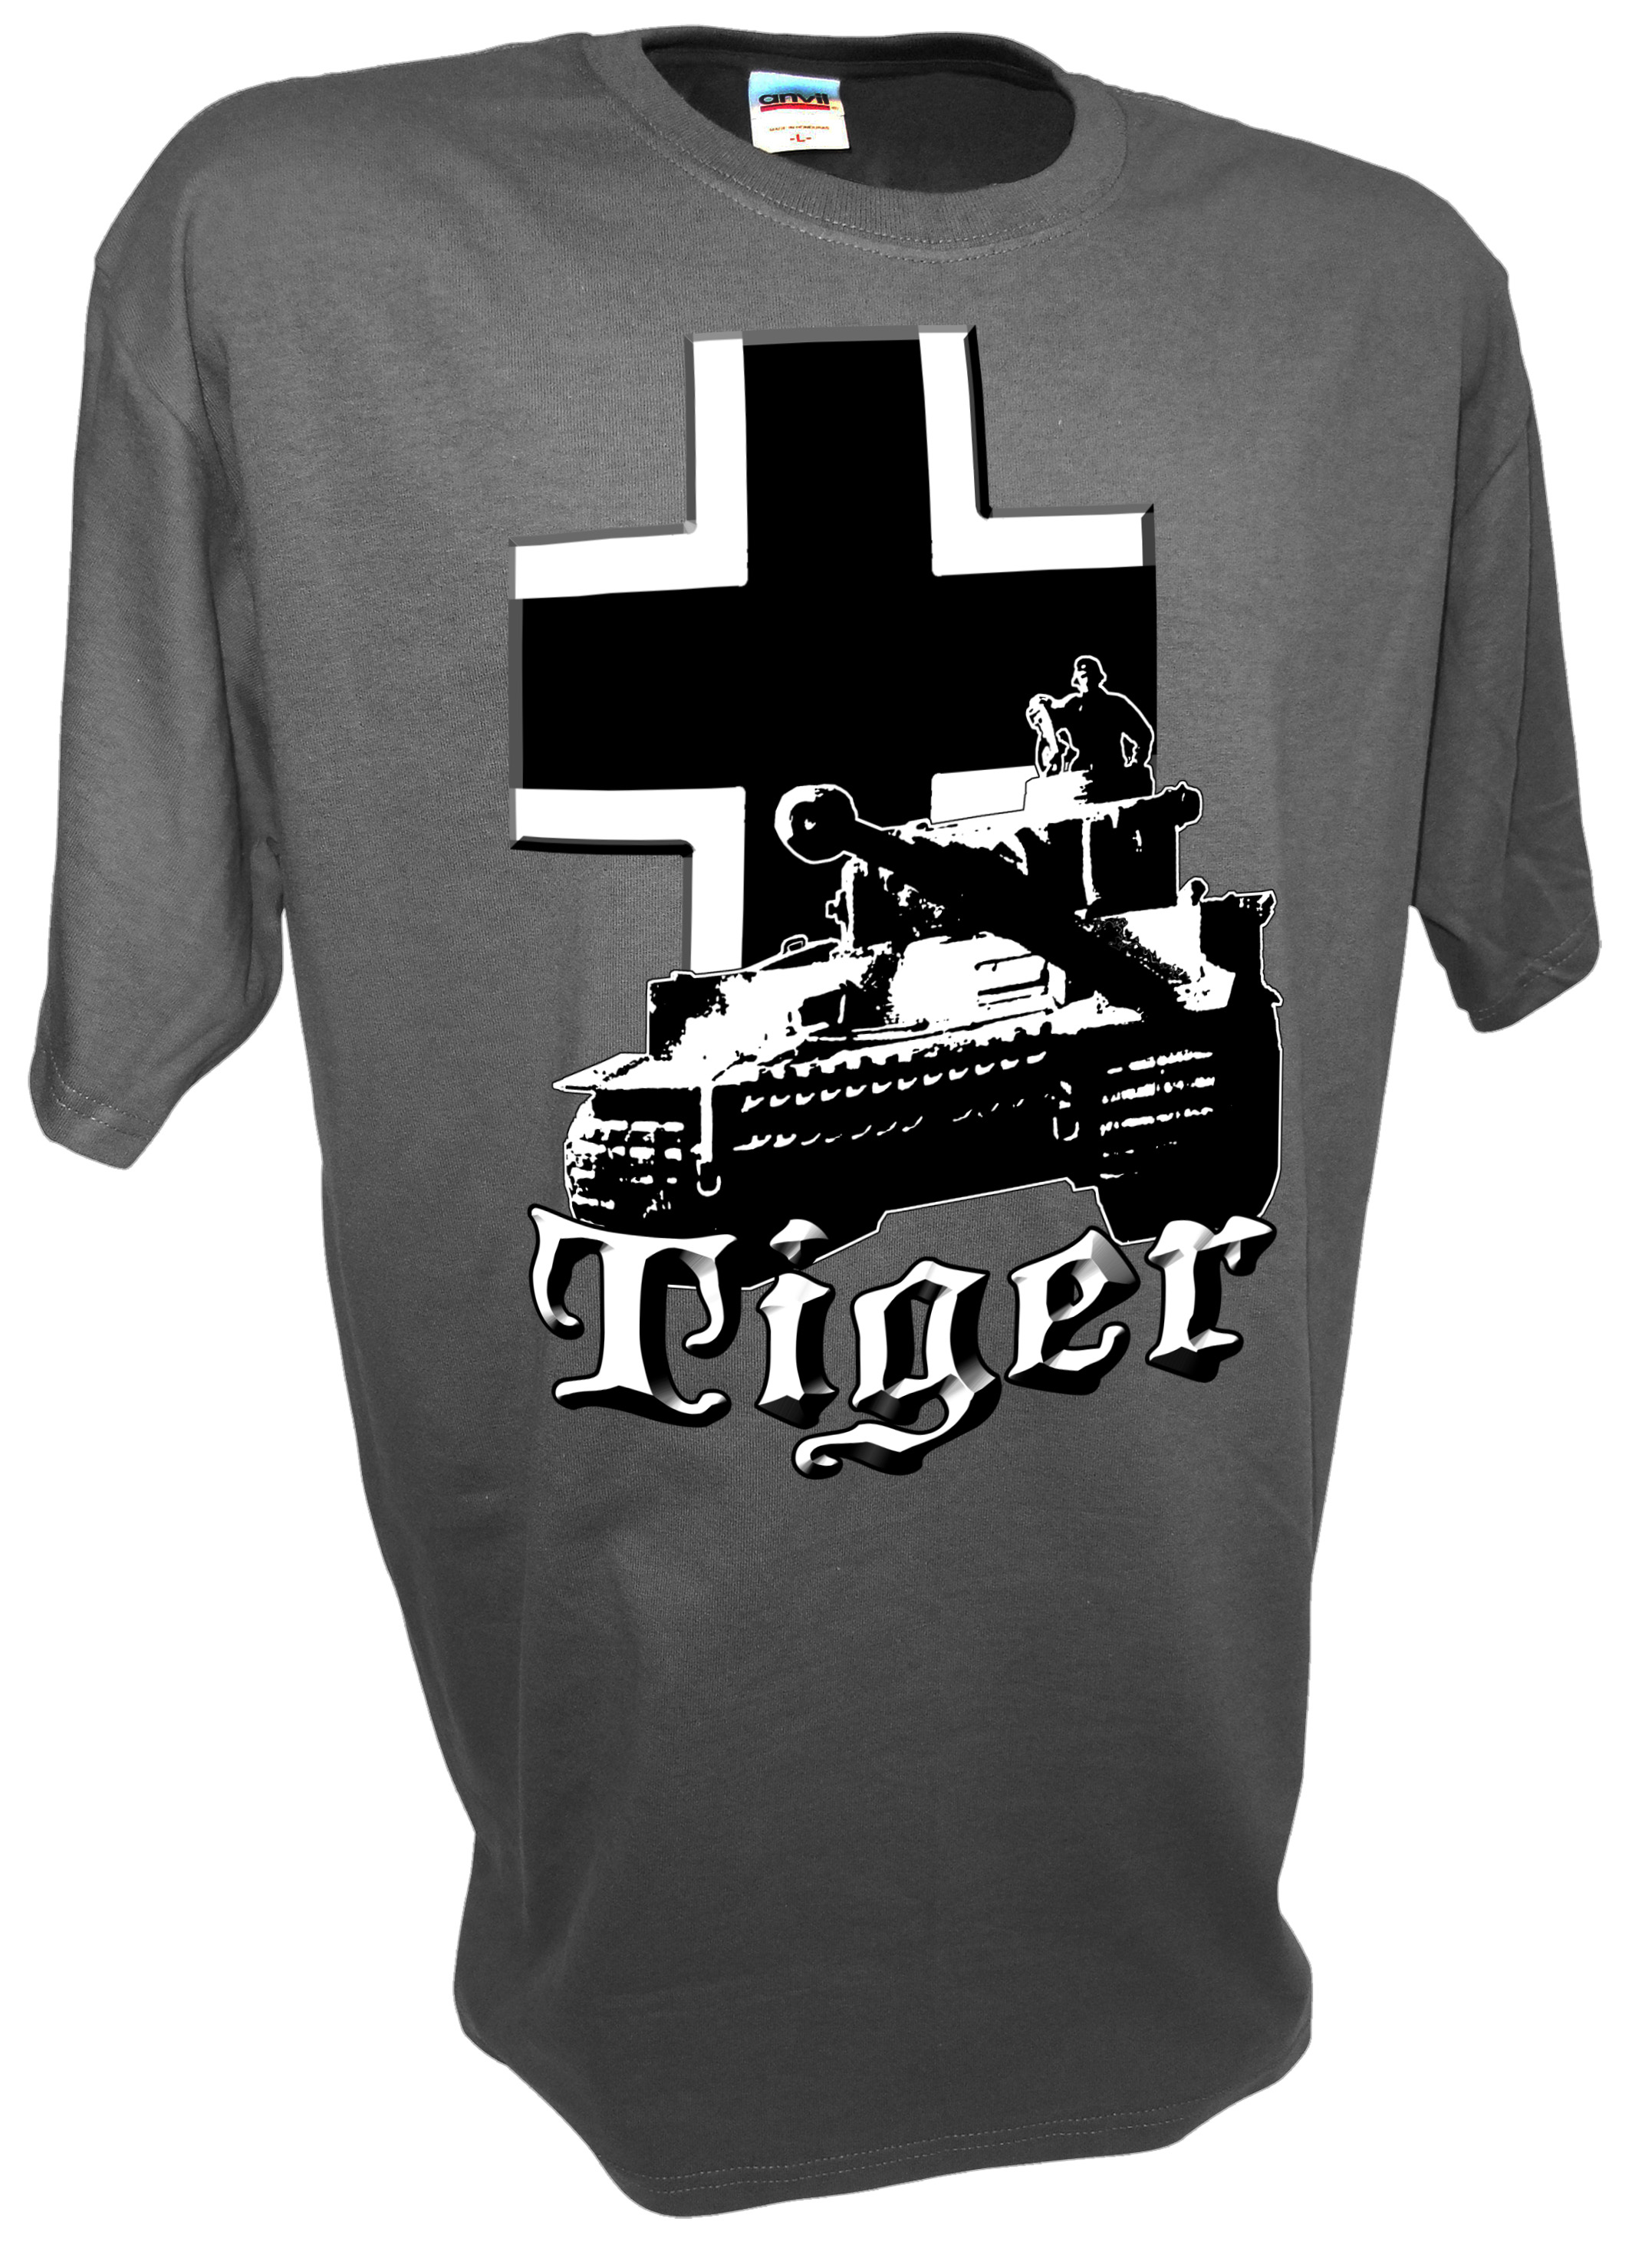 achtung t shirt 39 s weblog panzer tanks and guns on t shirts sweet page 5. Black Bedroom Furniture Sets. Home Design Ideas